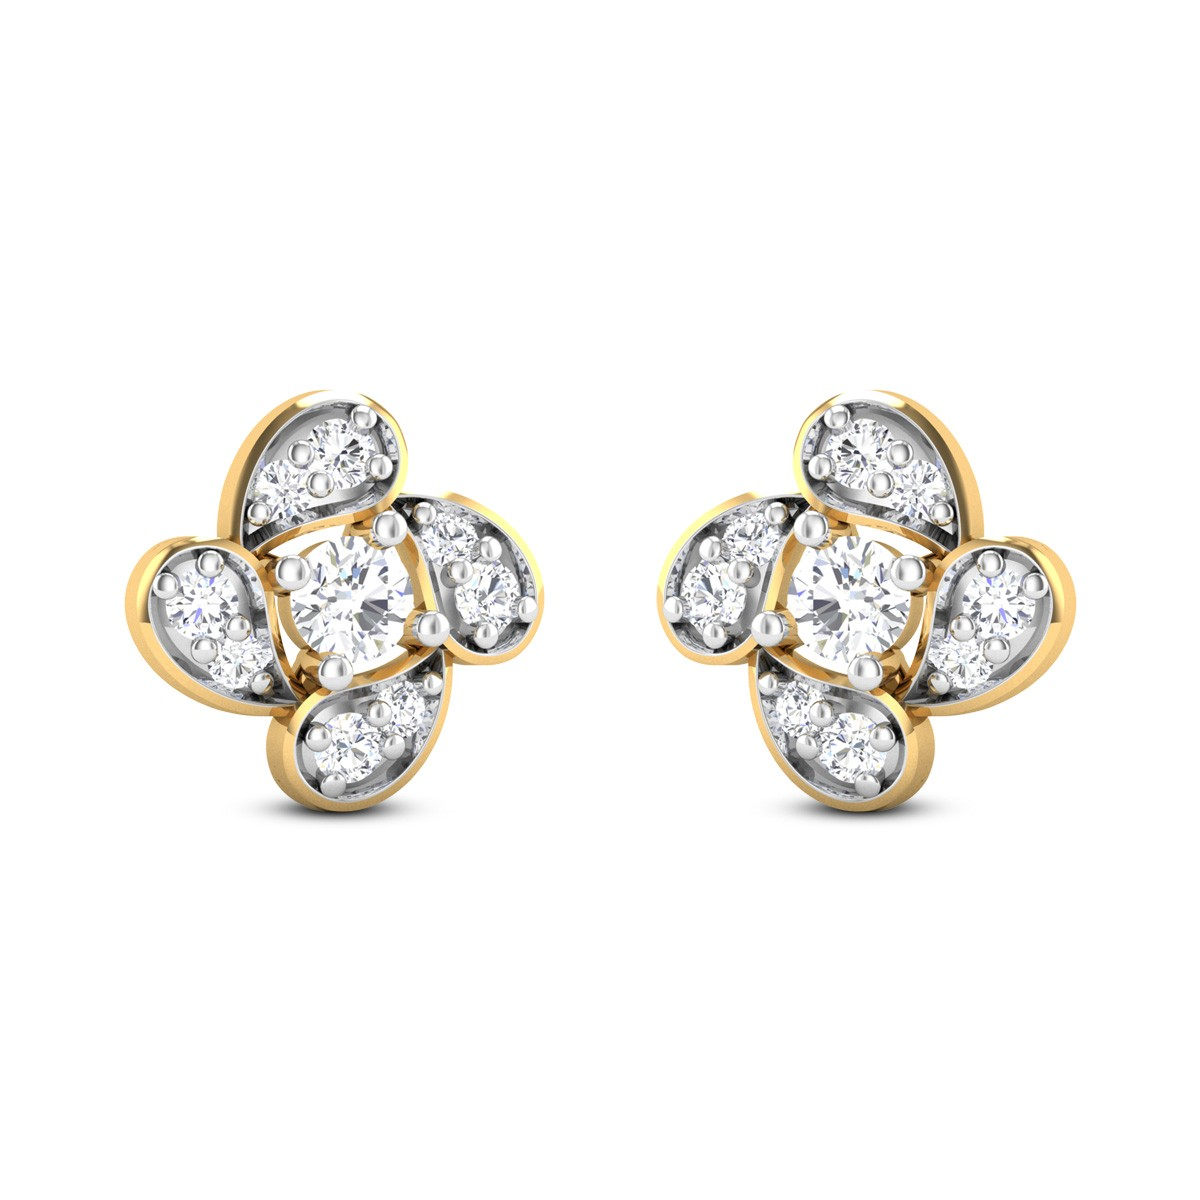 Swatantar Diamond Stud Earrings